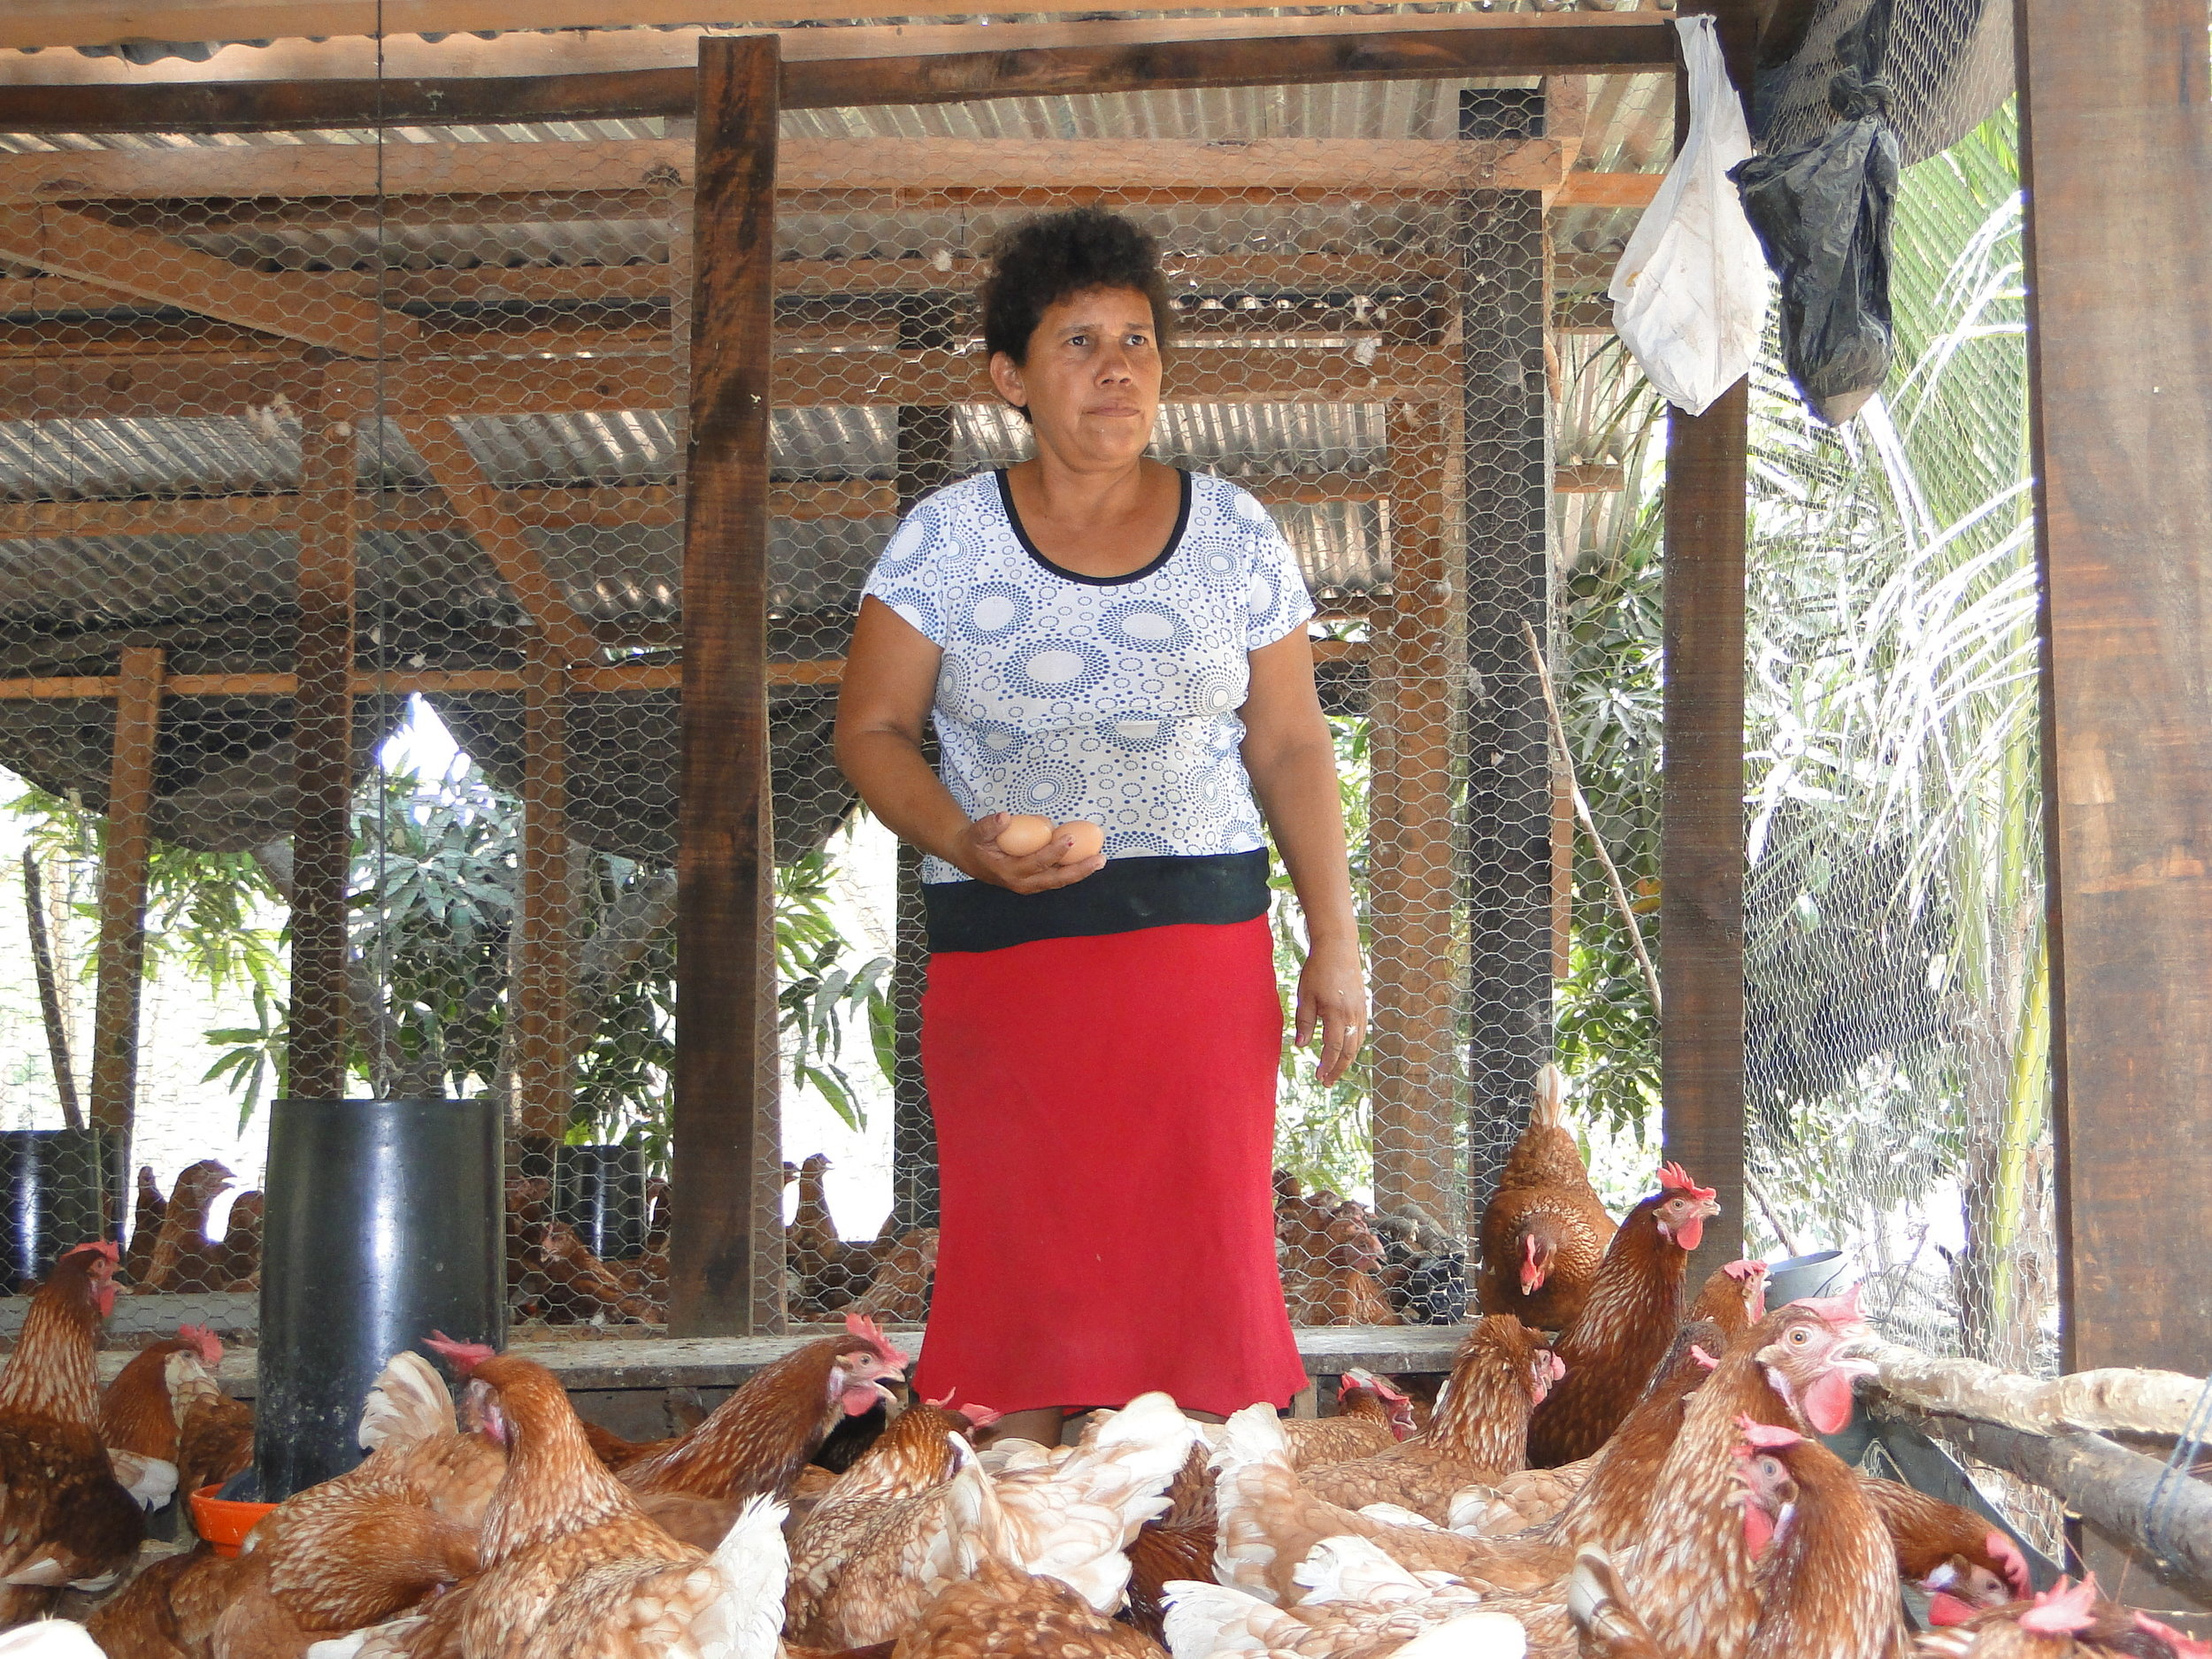 A women from Lower Lempa, El Salvador used her microcredit loan from ACUDESBAL to purchase chickens as a way to generate income for herself and her family.